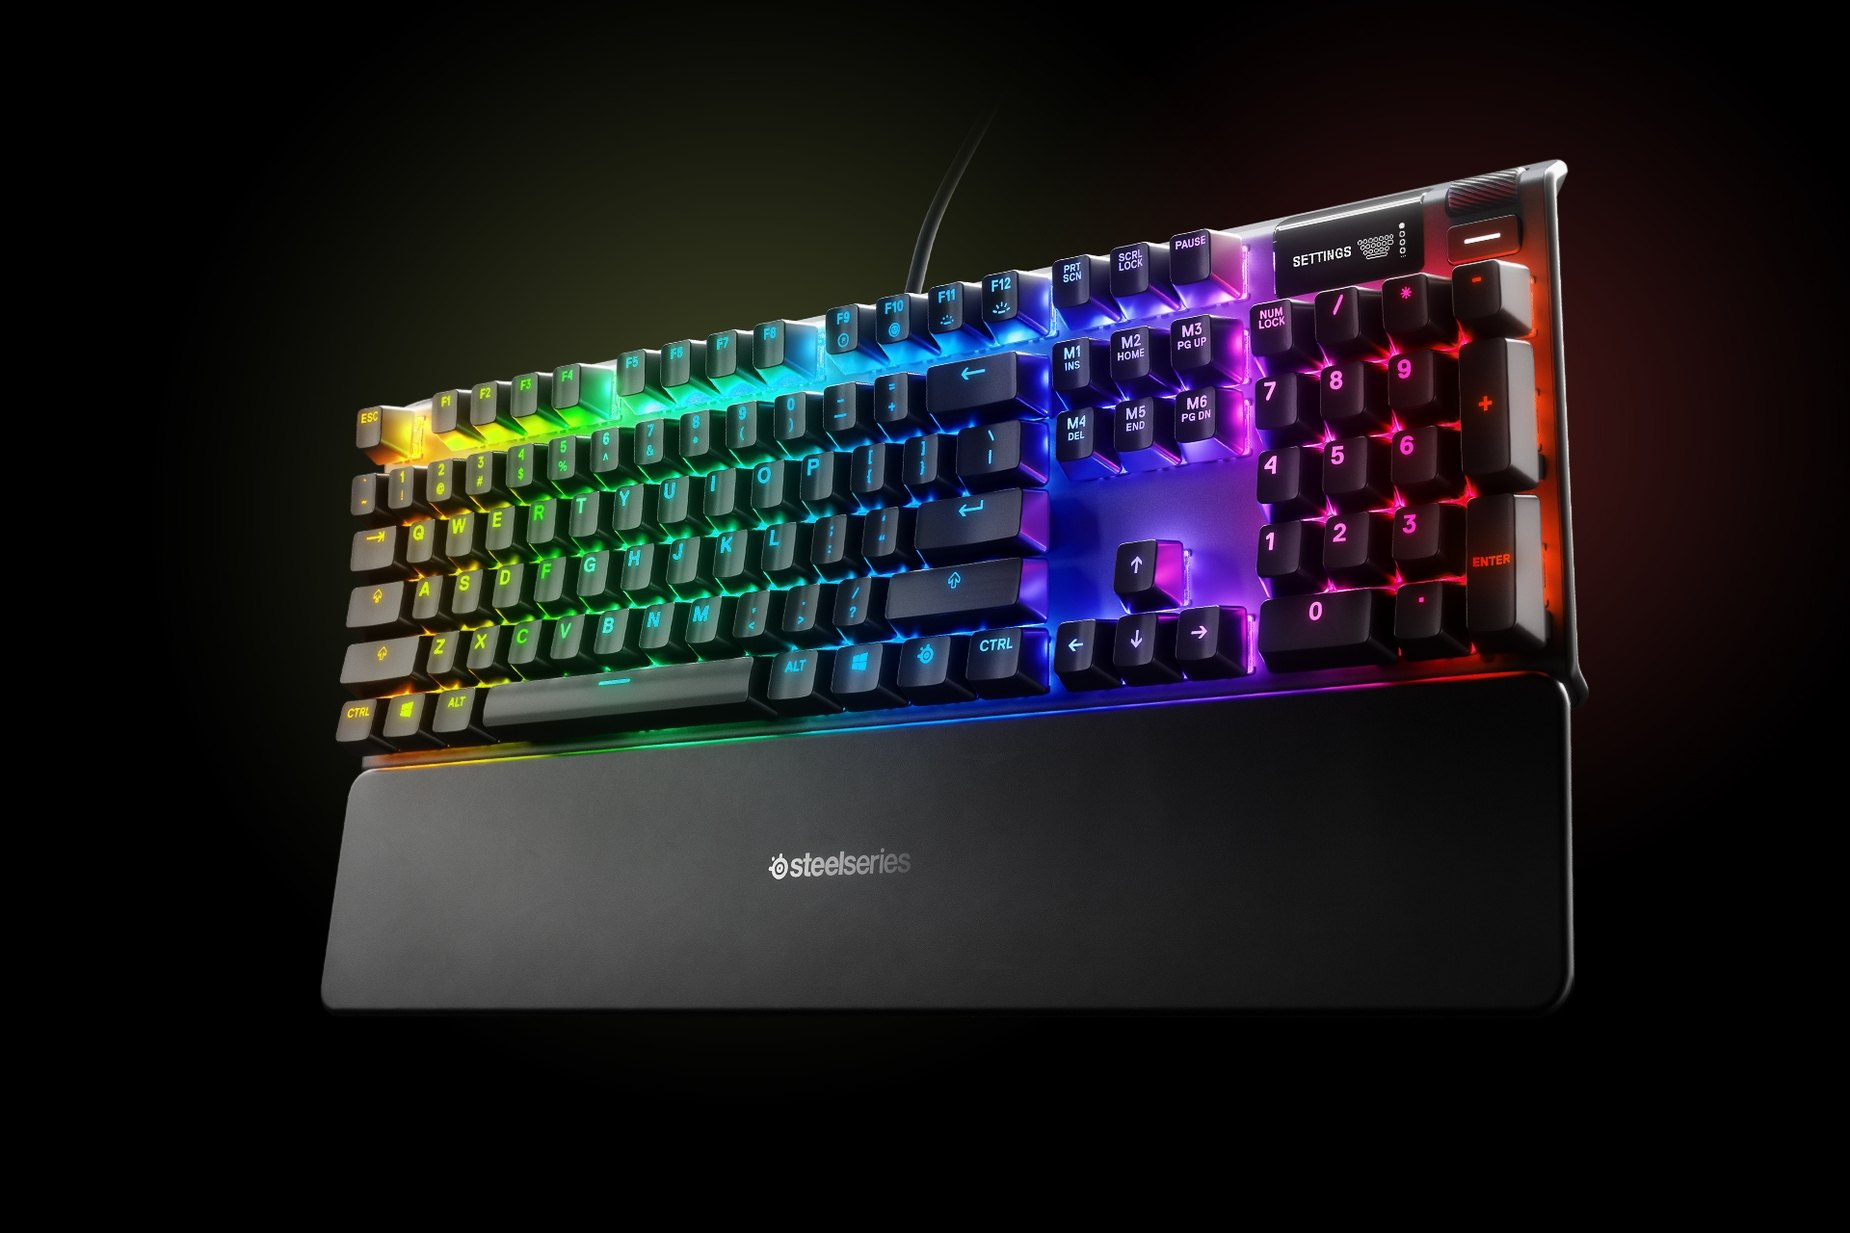 德语-Apex 7 (Red Switch) gaming keyboard with the illumination lit up on dark background, also shows the OLED screen and controls used to change settings and adjust audio